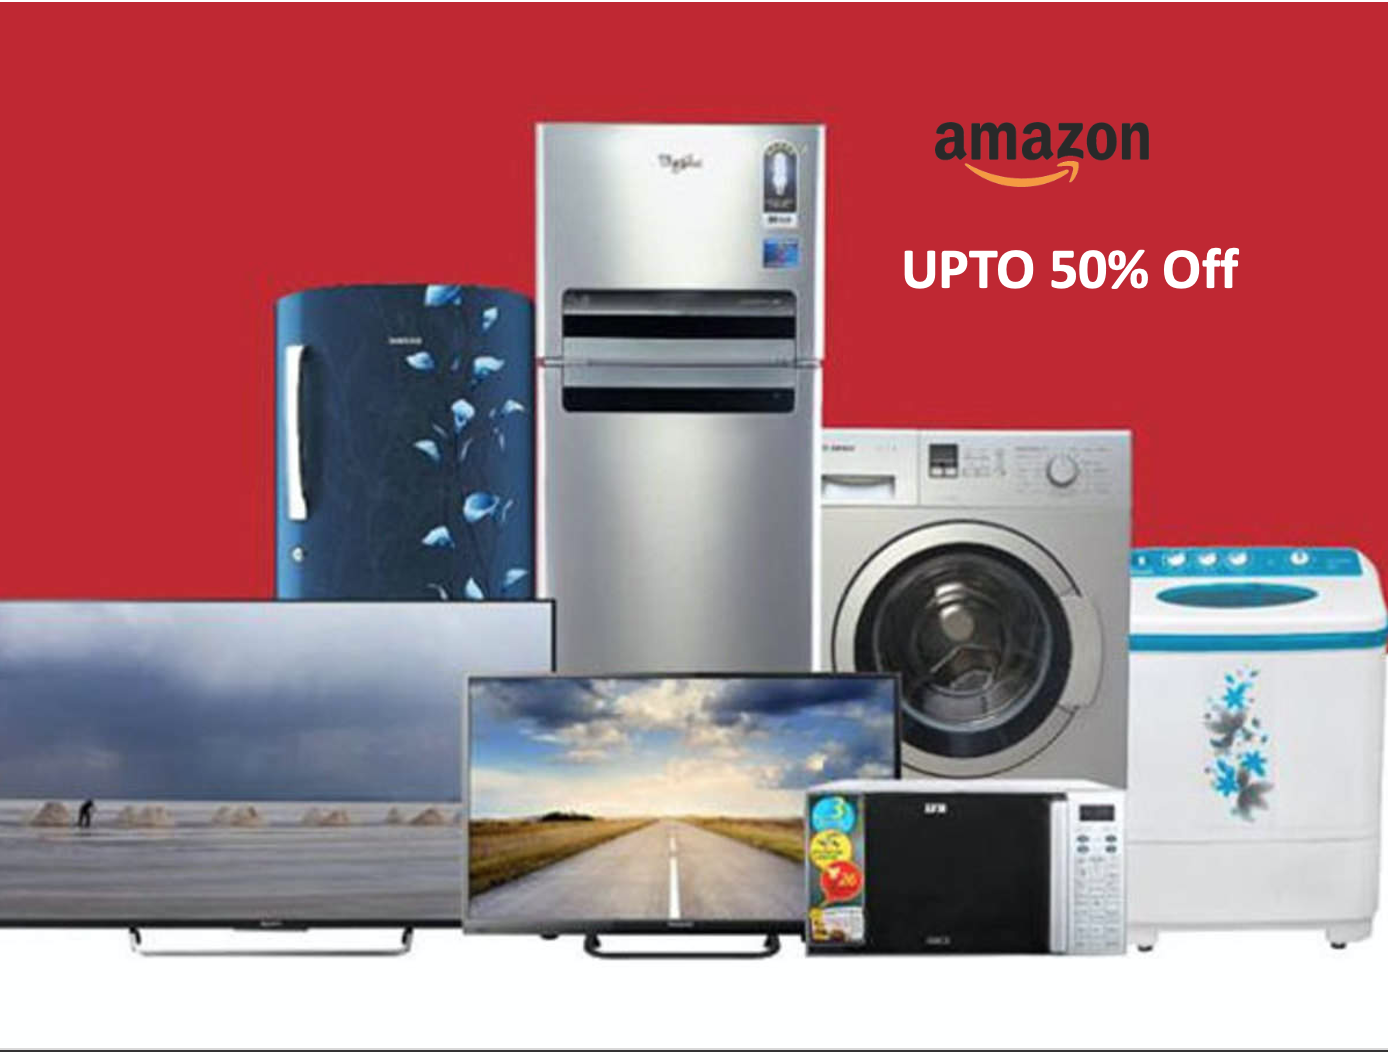 Amazon sale, Upto 50% Off on Electronics & more